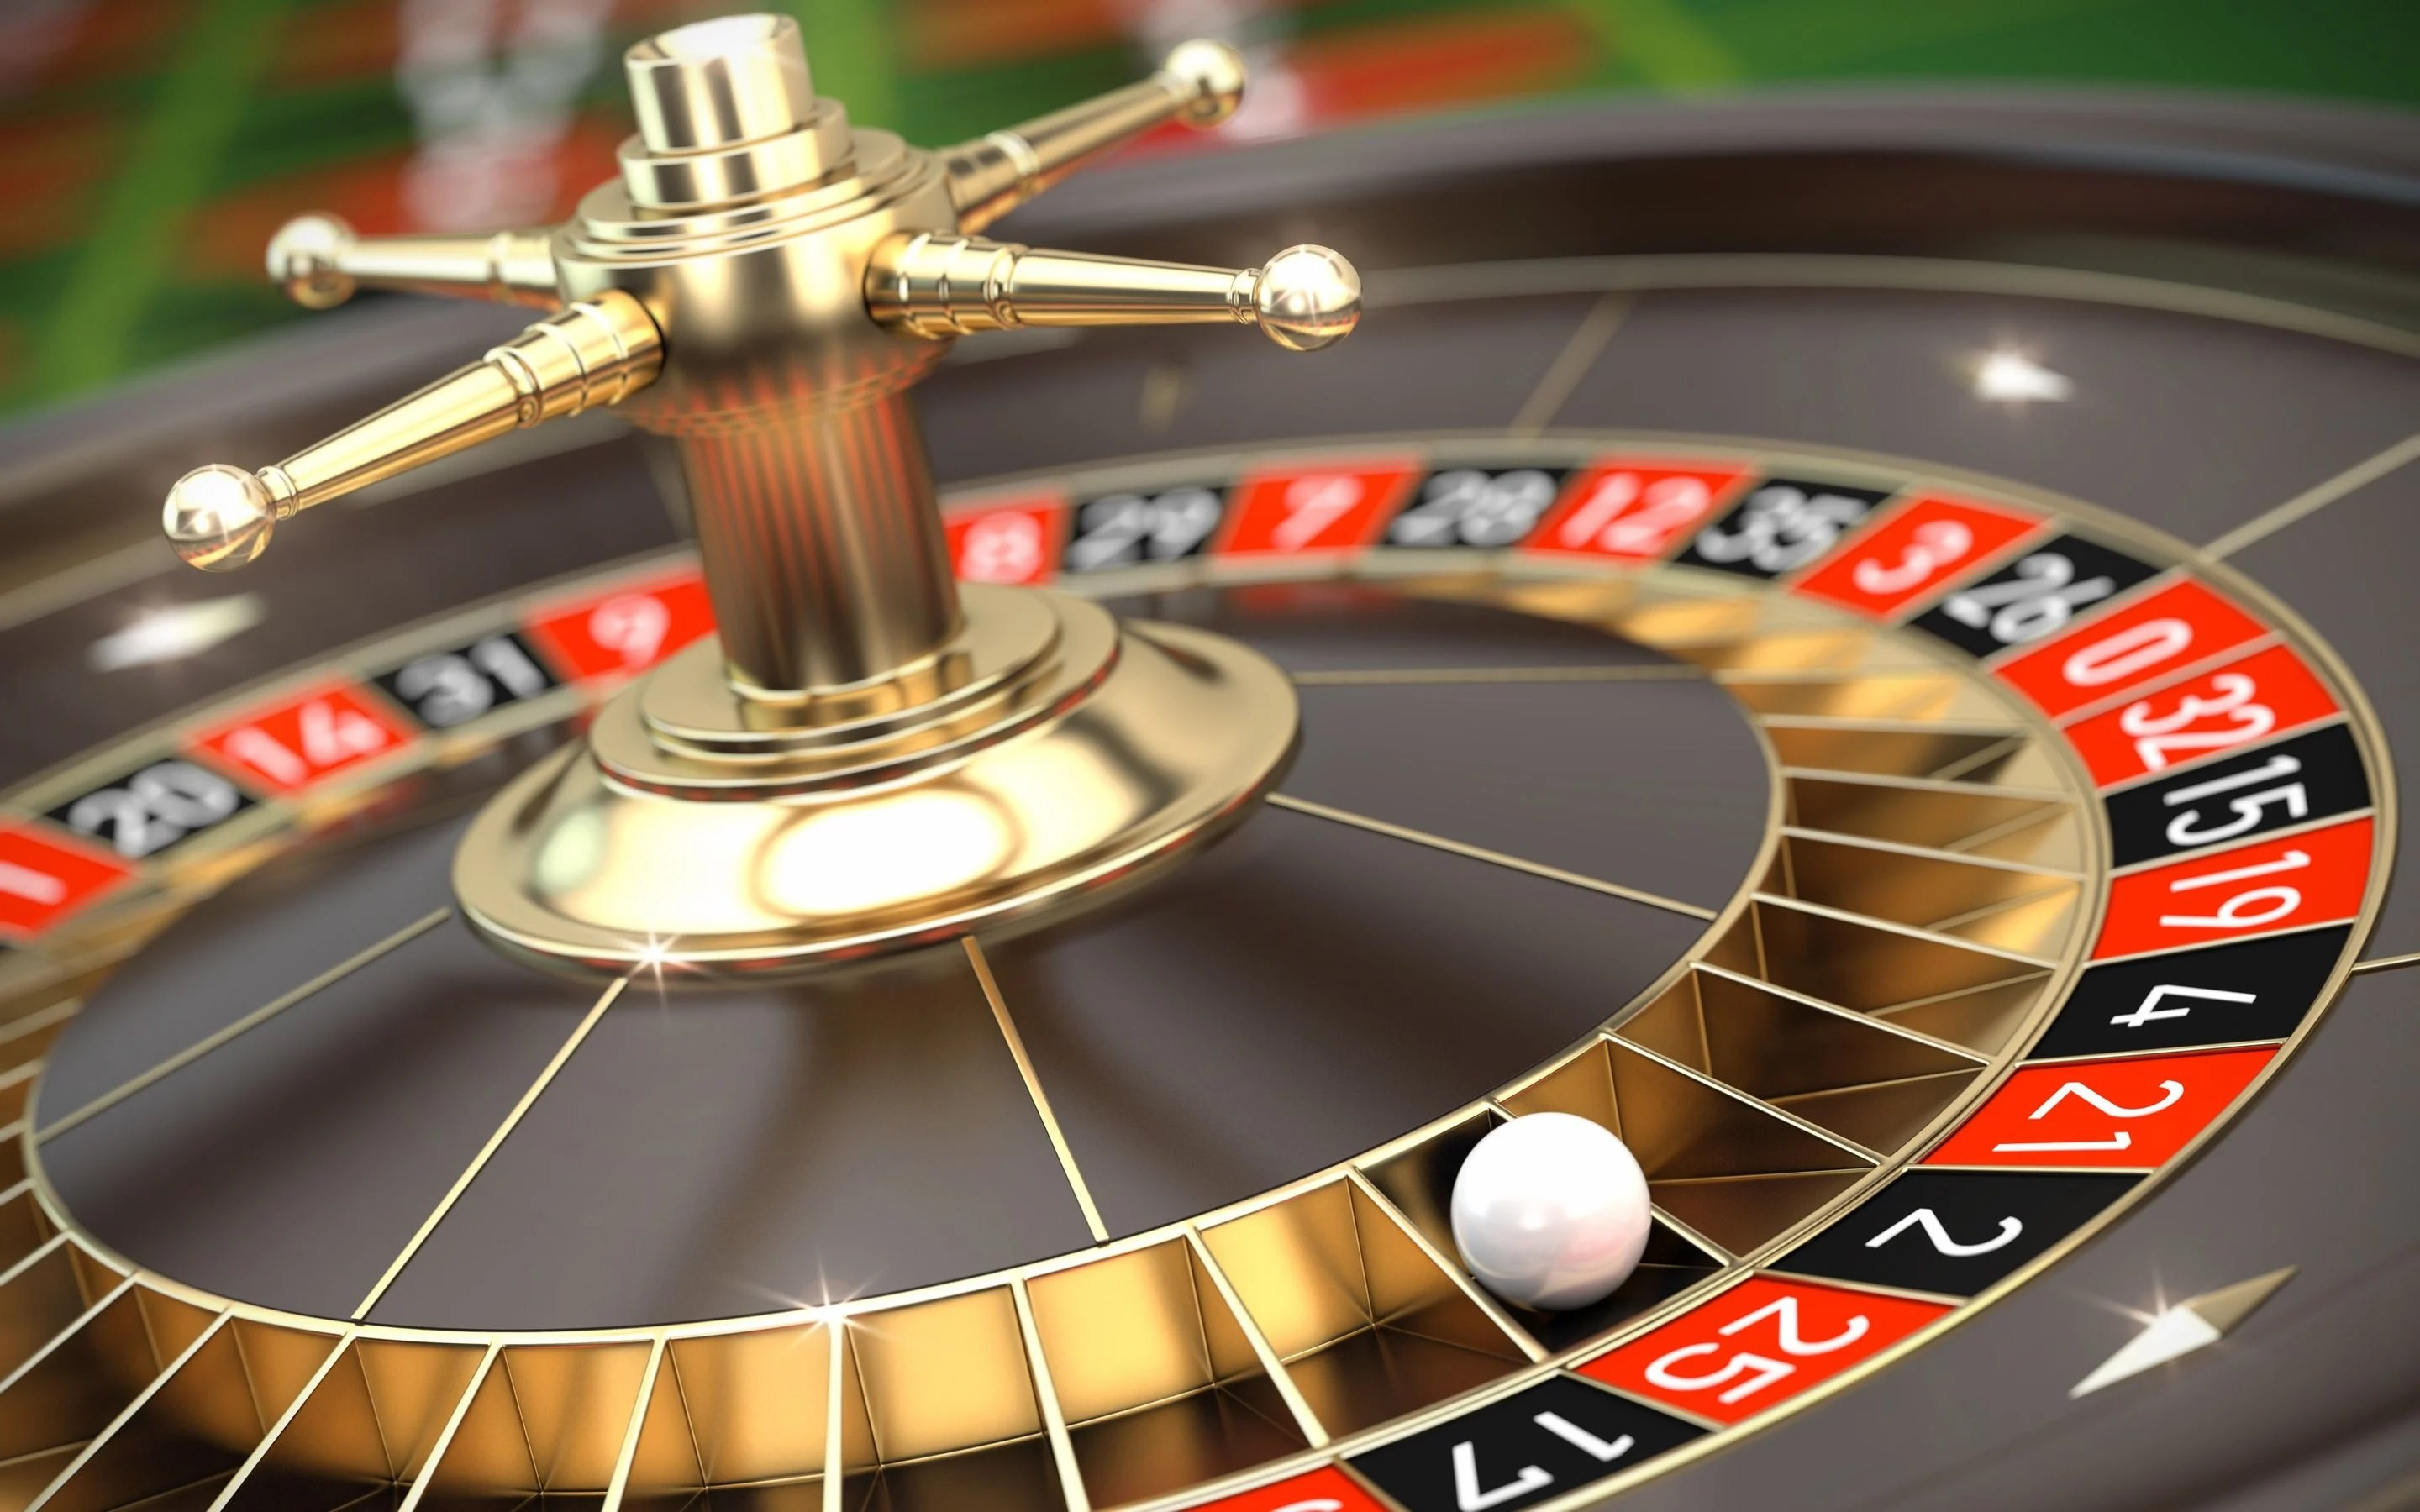 Using advanced gambling devices to cheat the casino gambling softwares